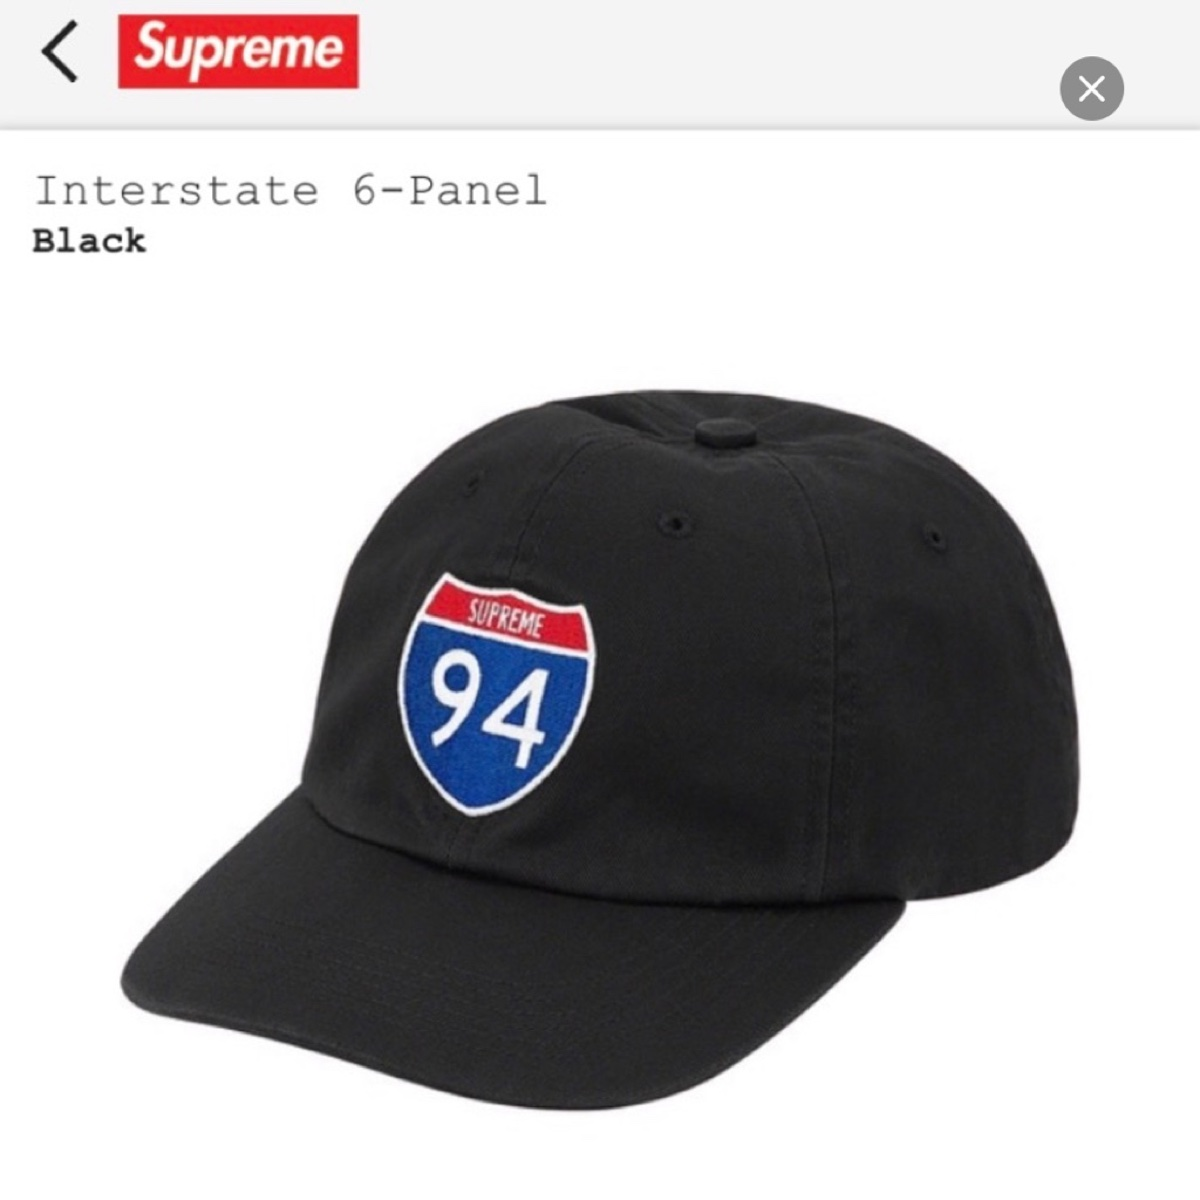 Supreme Interstate 6 Panel Dad Cap Black